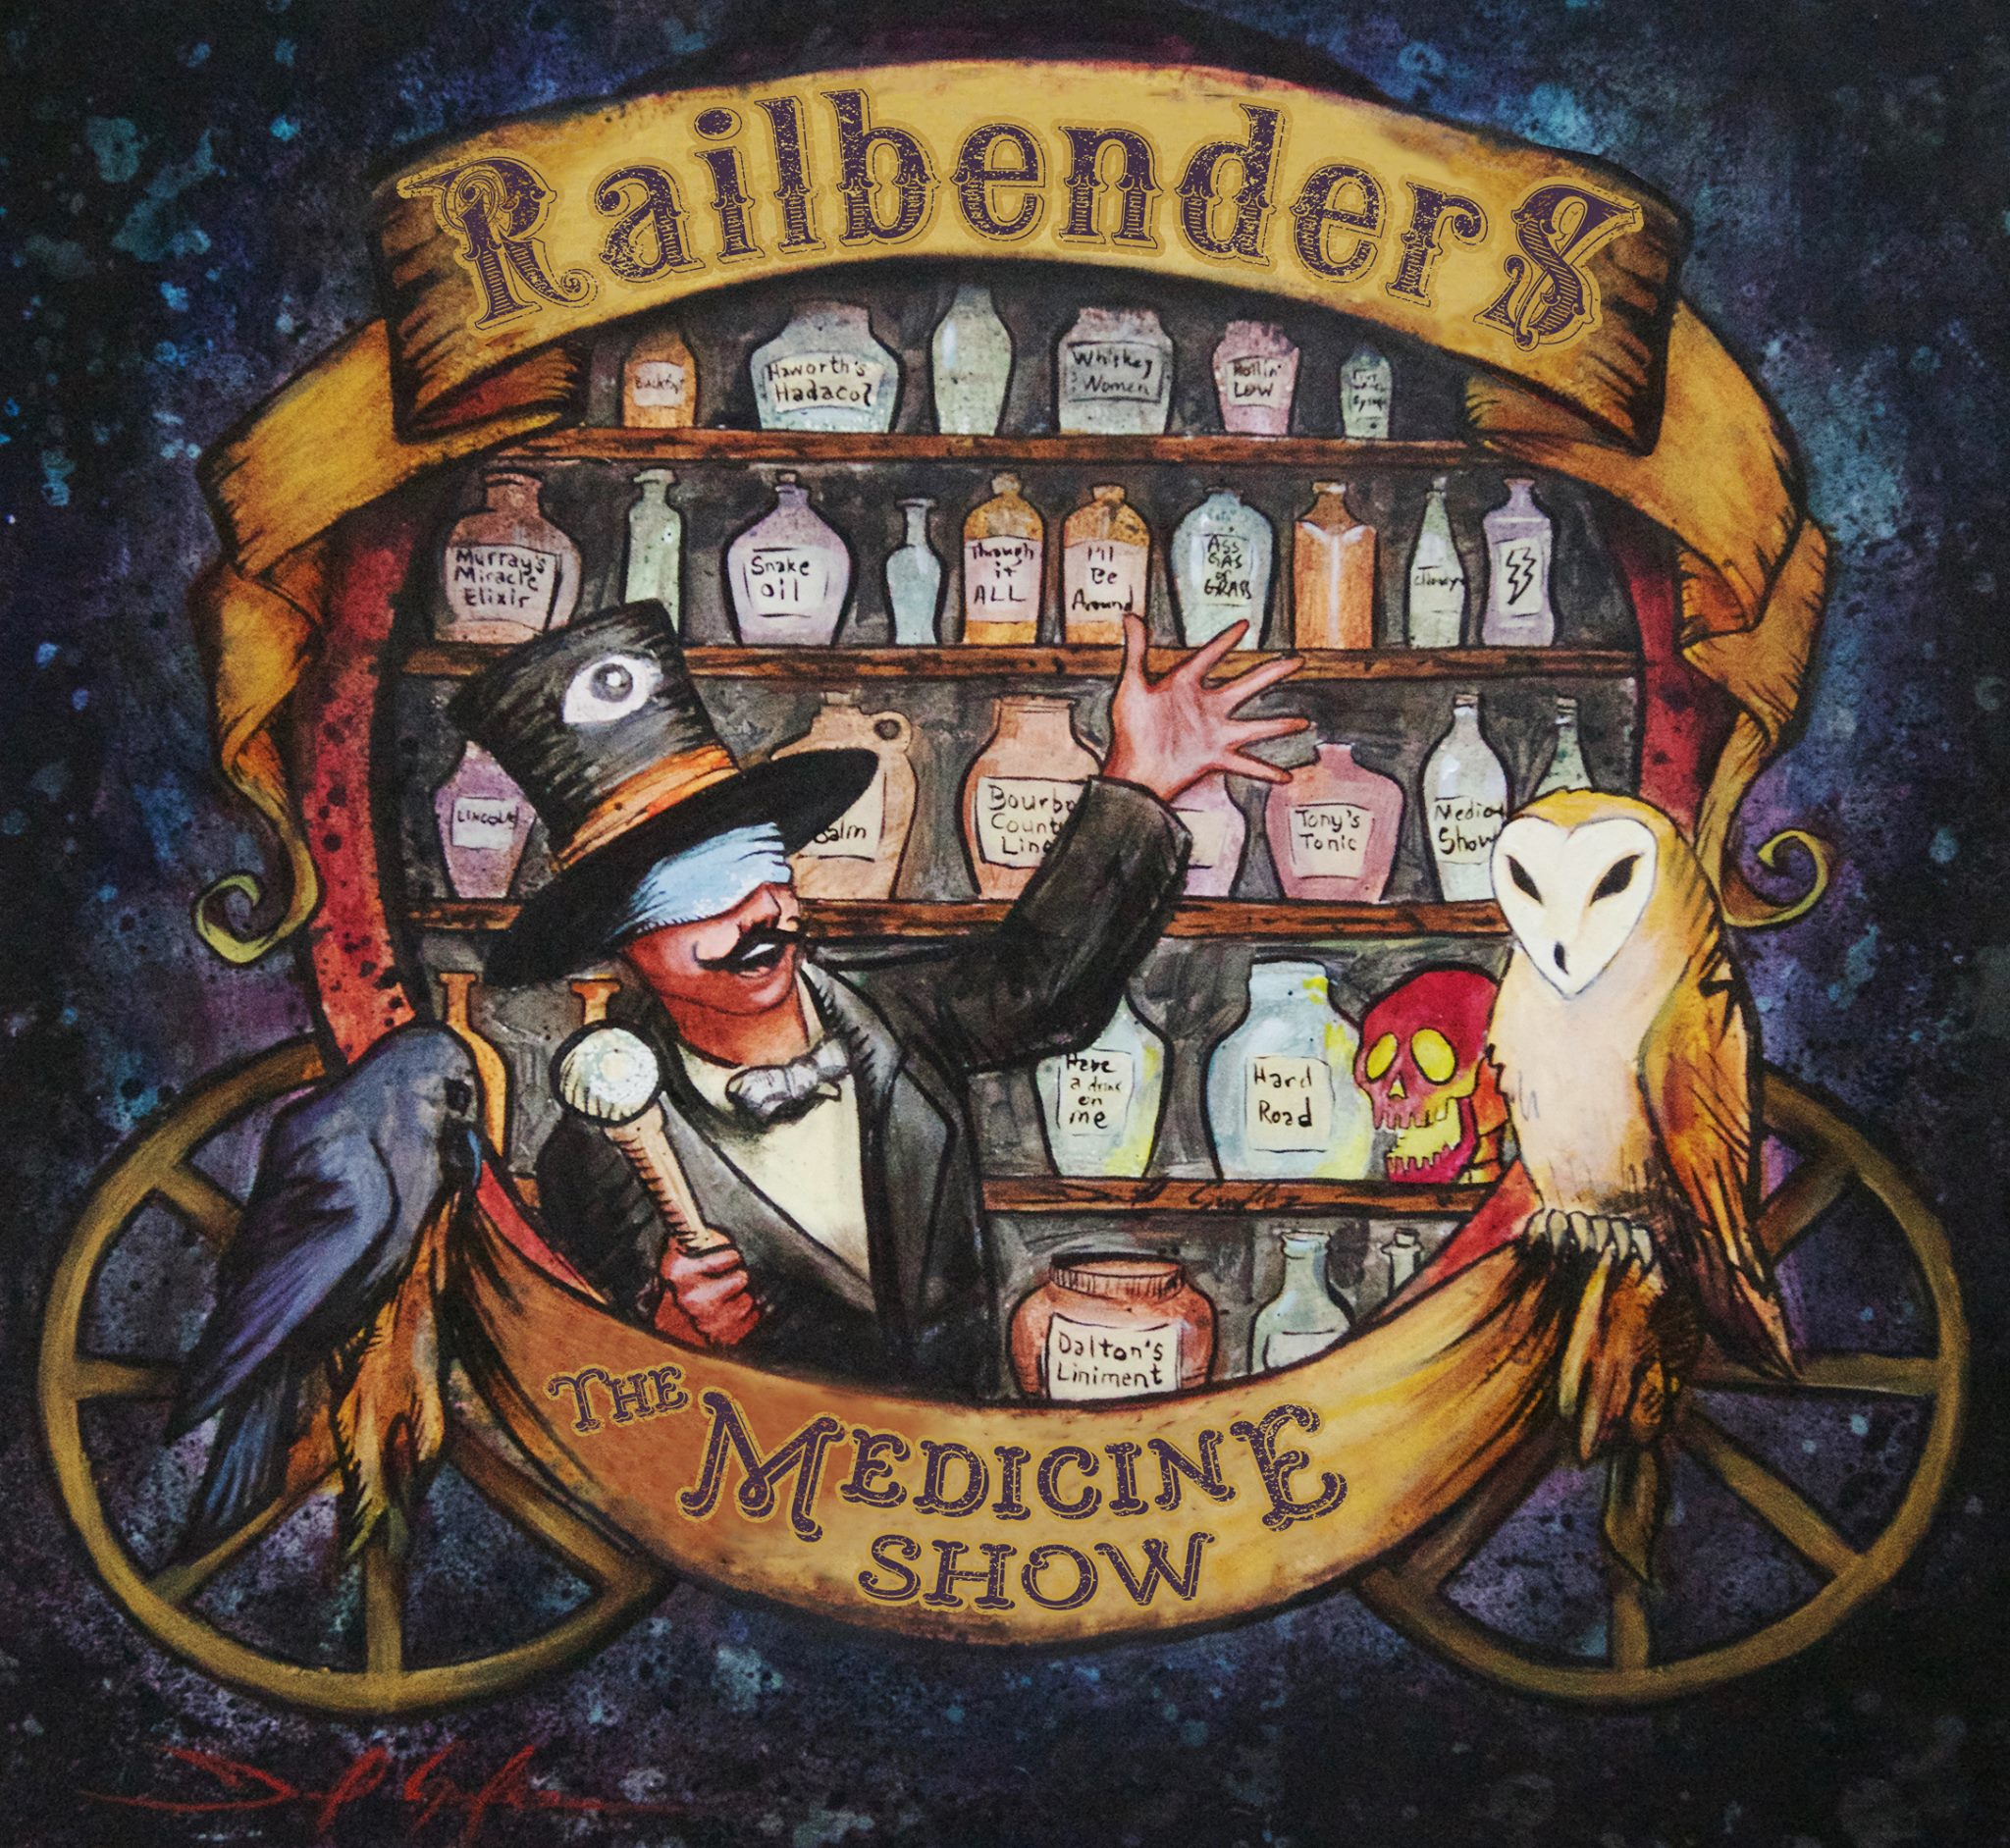 Railbenders - The Medicine Show